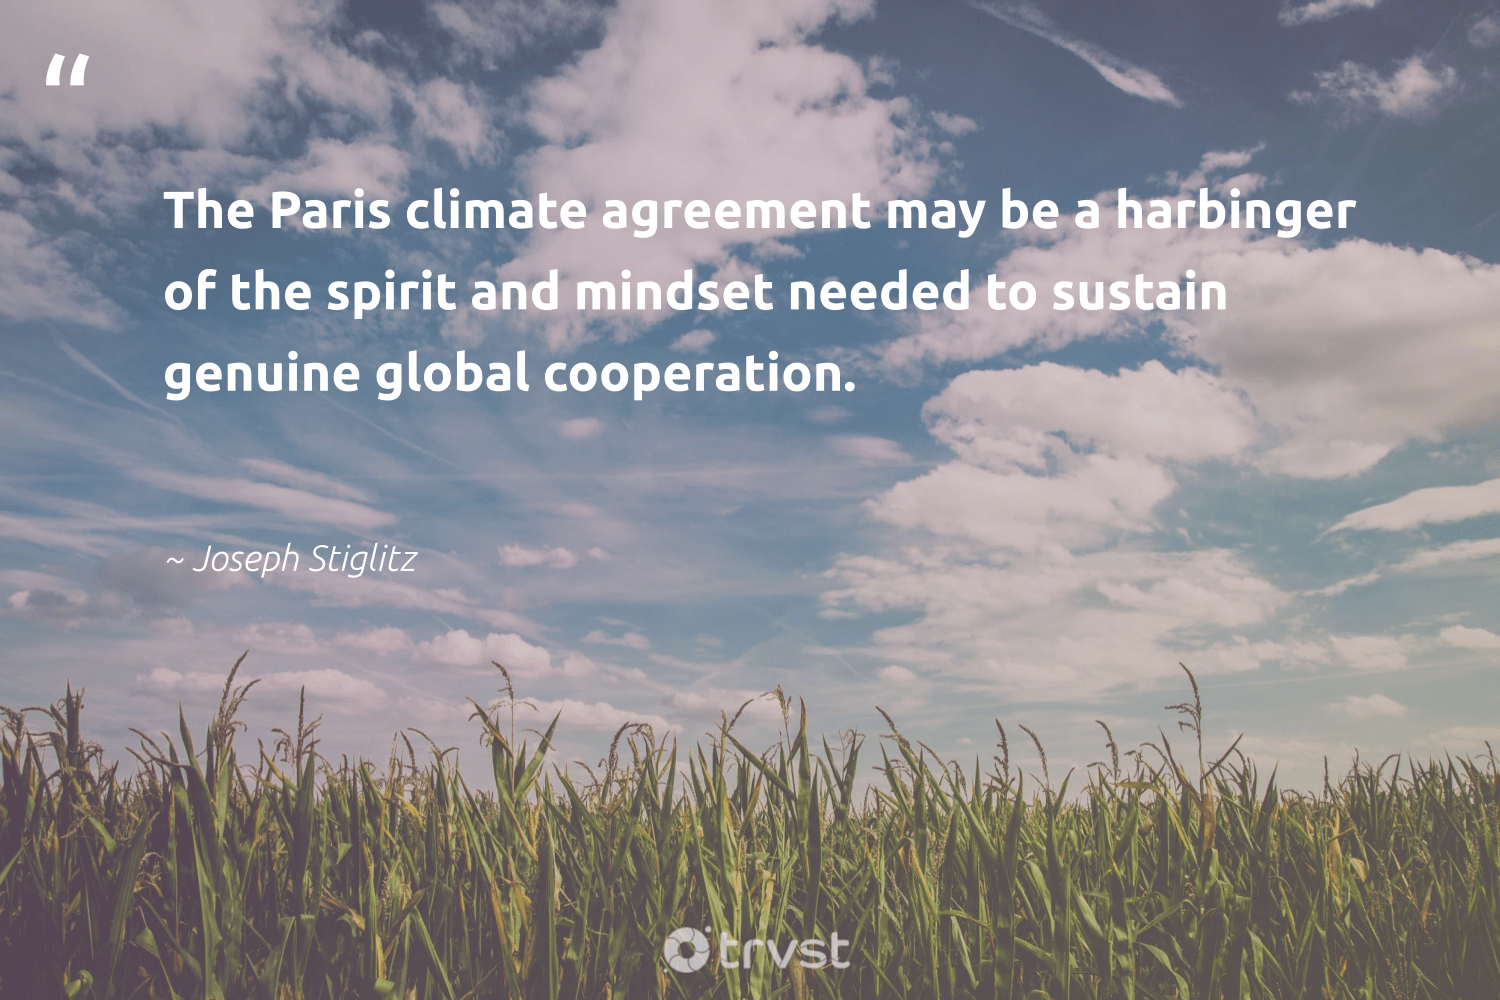 """""""The Paris climate agreement may be a harbinger of the spirit and mindset needed to sustain genuine global cooperation.""""  - Joseph Stiglitz #trvst #quotes #climate #mindset #actonclimate #nevergiveup #ecoconscious #planetearthfirst #carbonemissions #health #climatechangeisreal #thinkgreen"""